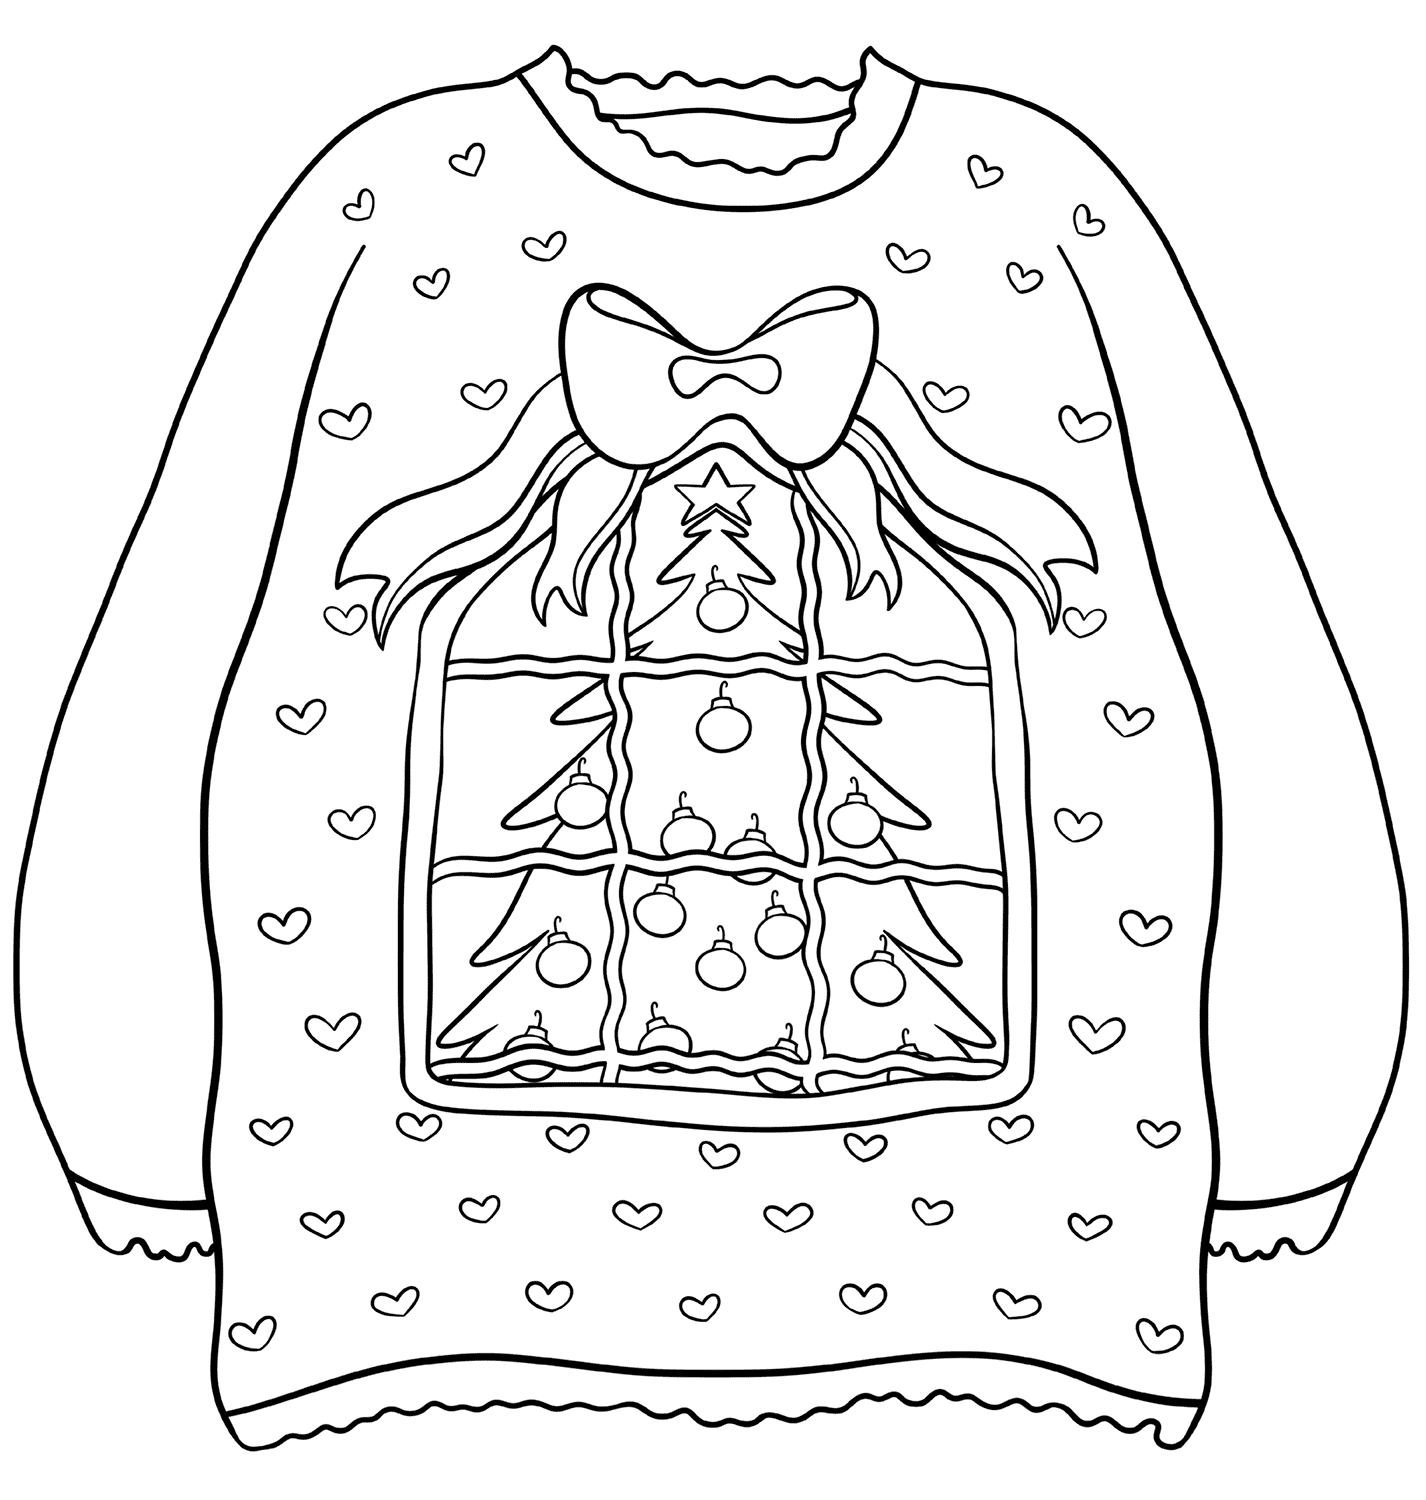 Sweater with Christmas Tree Coloring Page